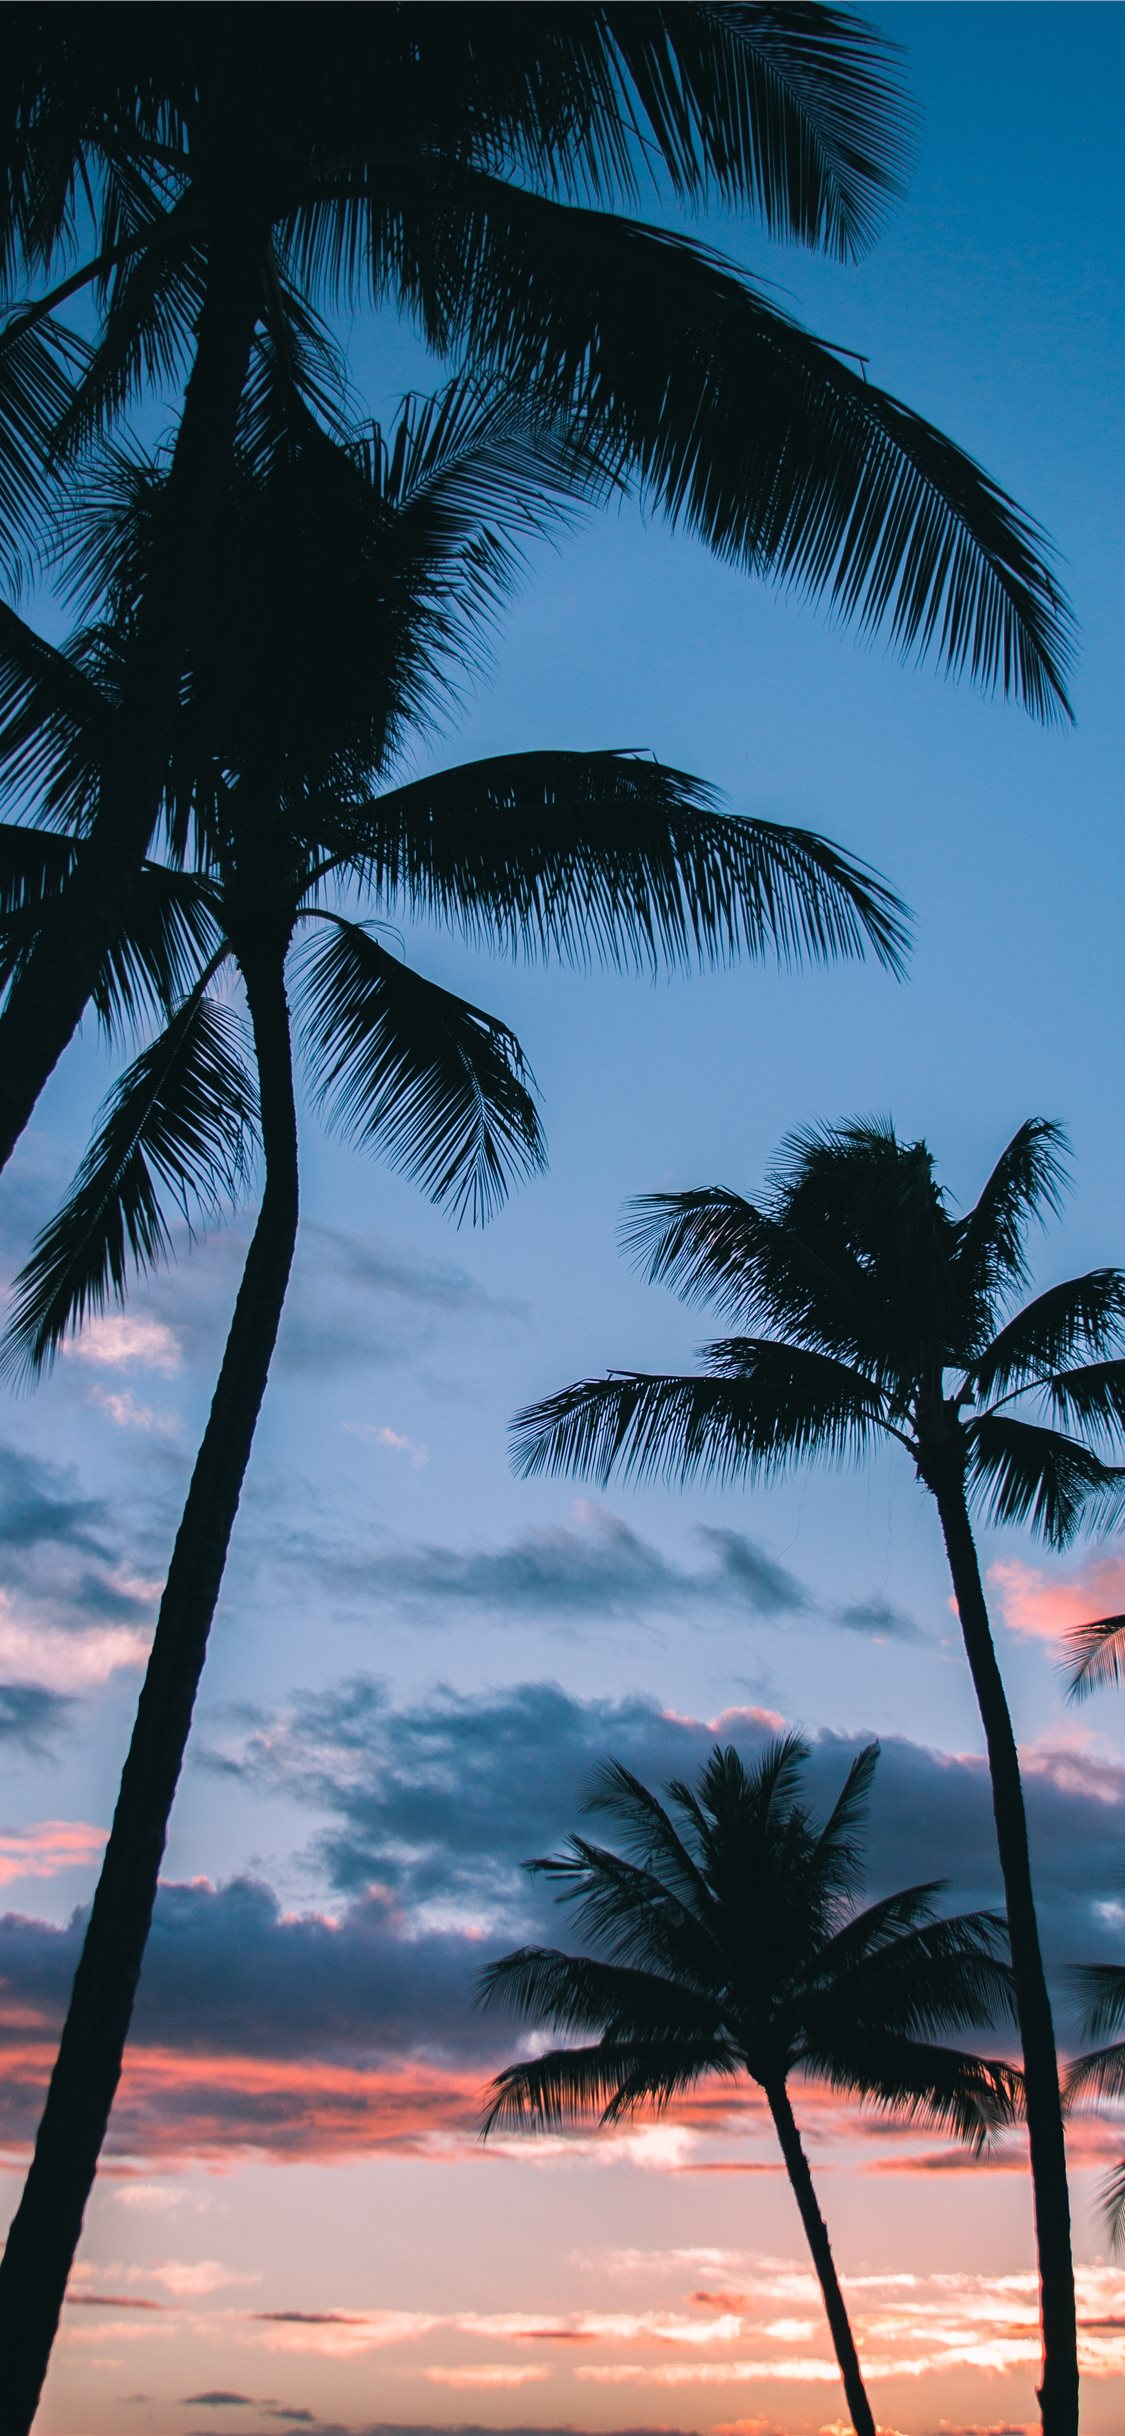 Palm Trees in Paradise iPhone 8 Wallpaper Download  iPhone Wallpapers, iPad wallpapers Onestop